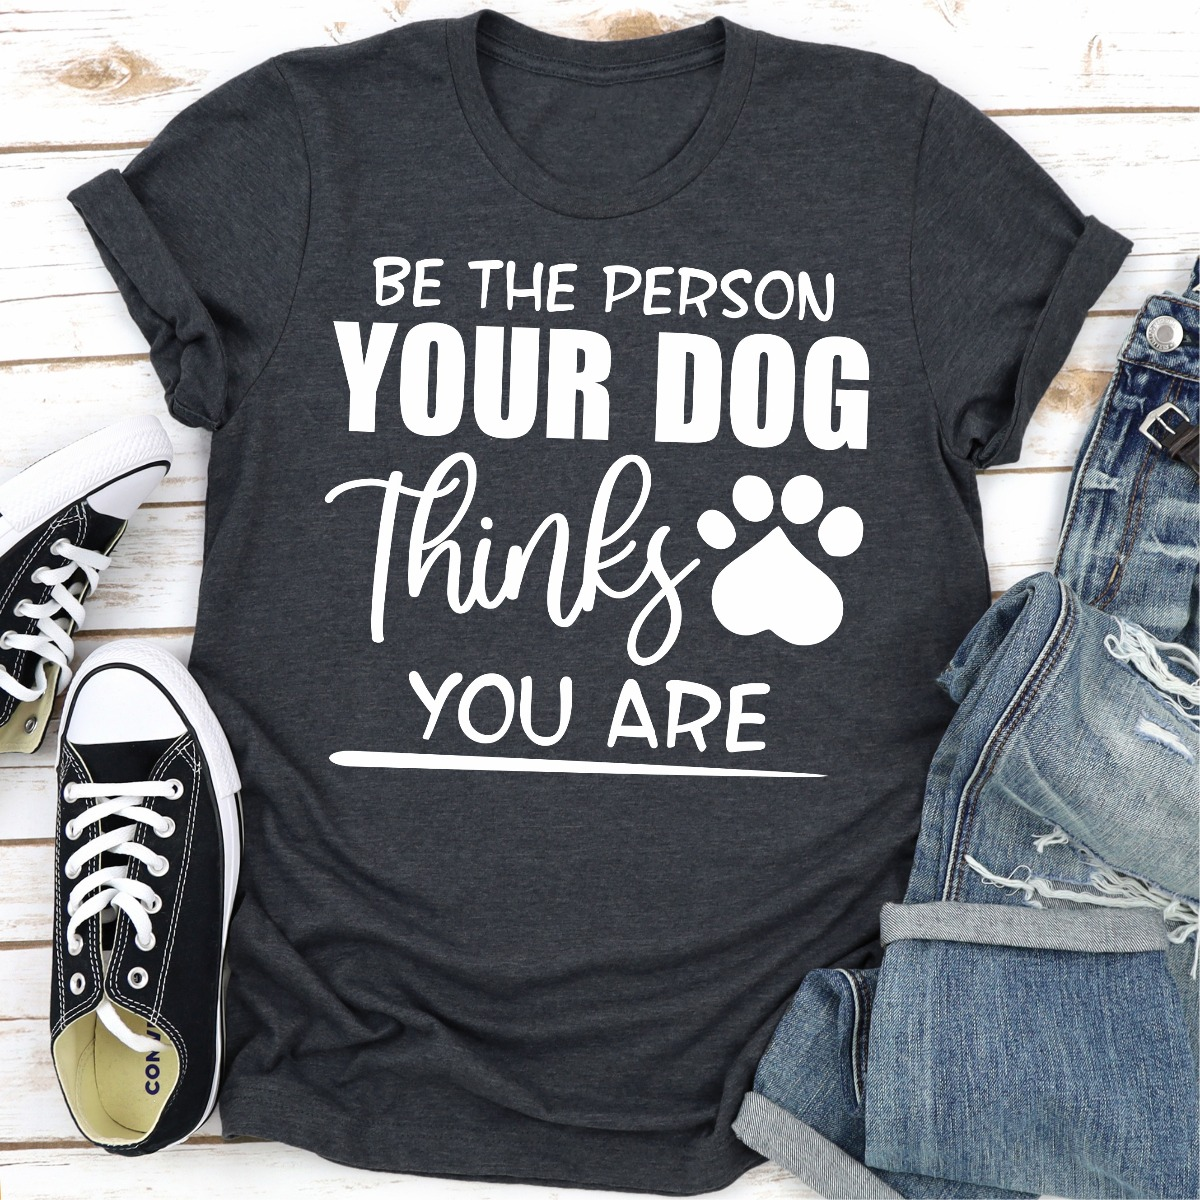 Be The Person Your Dog Thinks You Are (Dark Heather / L)